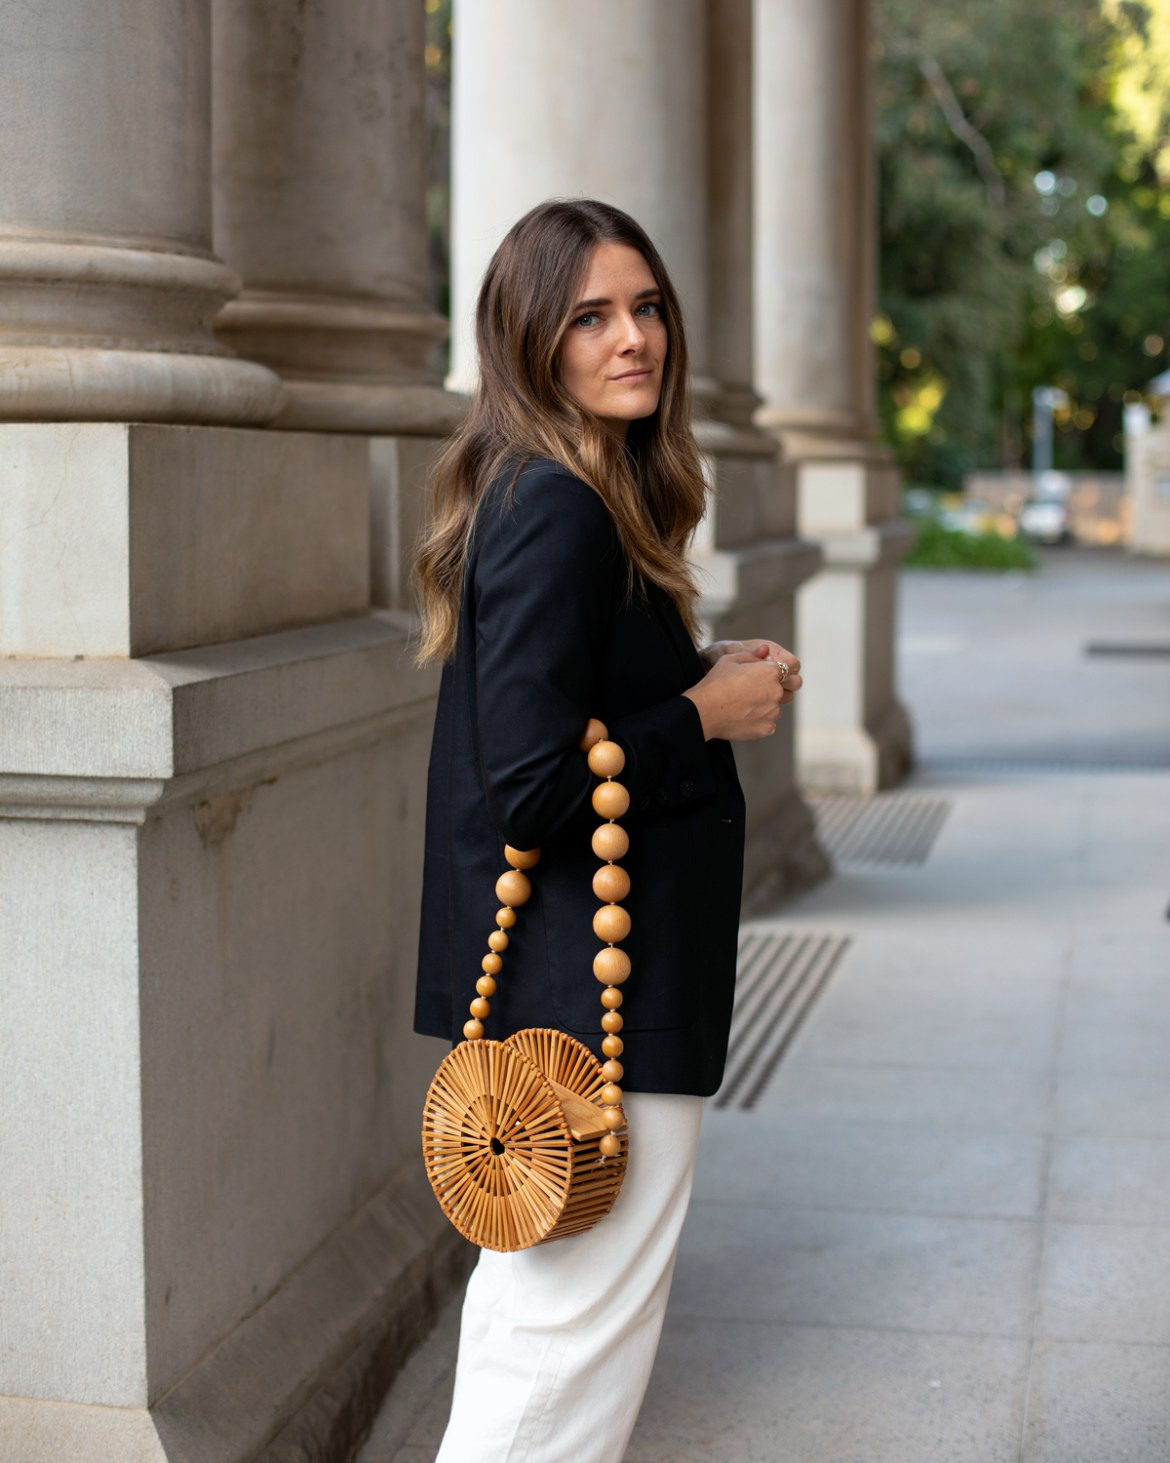 Black blazer, cream pants outfit with bamboo bag from Cult Gaia